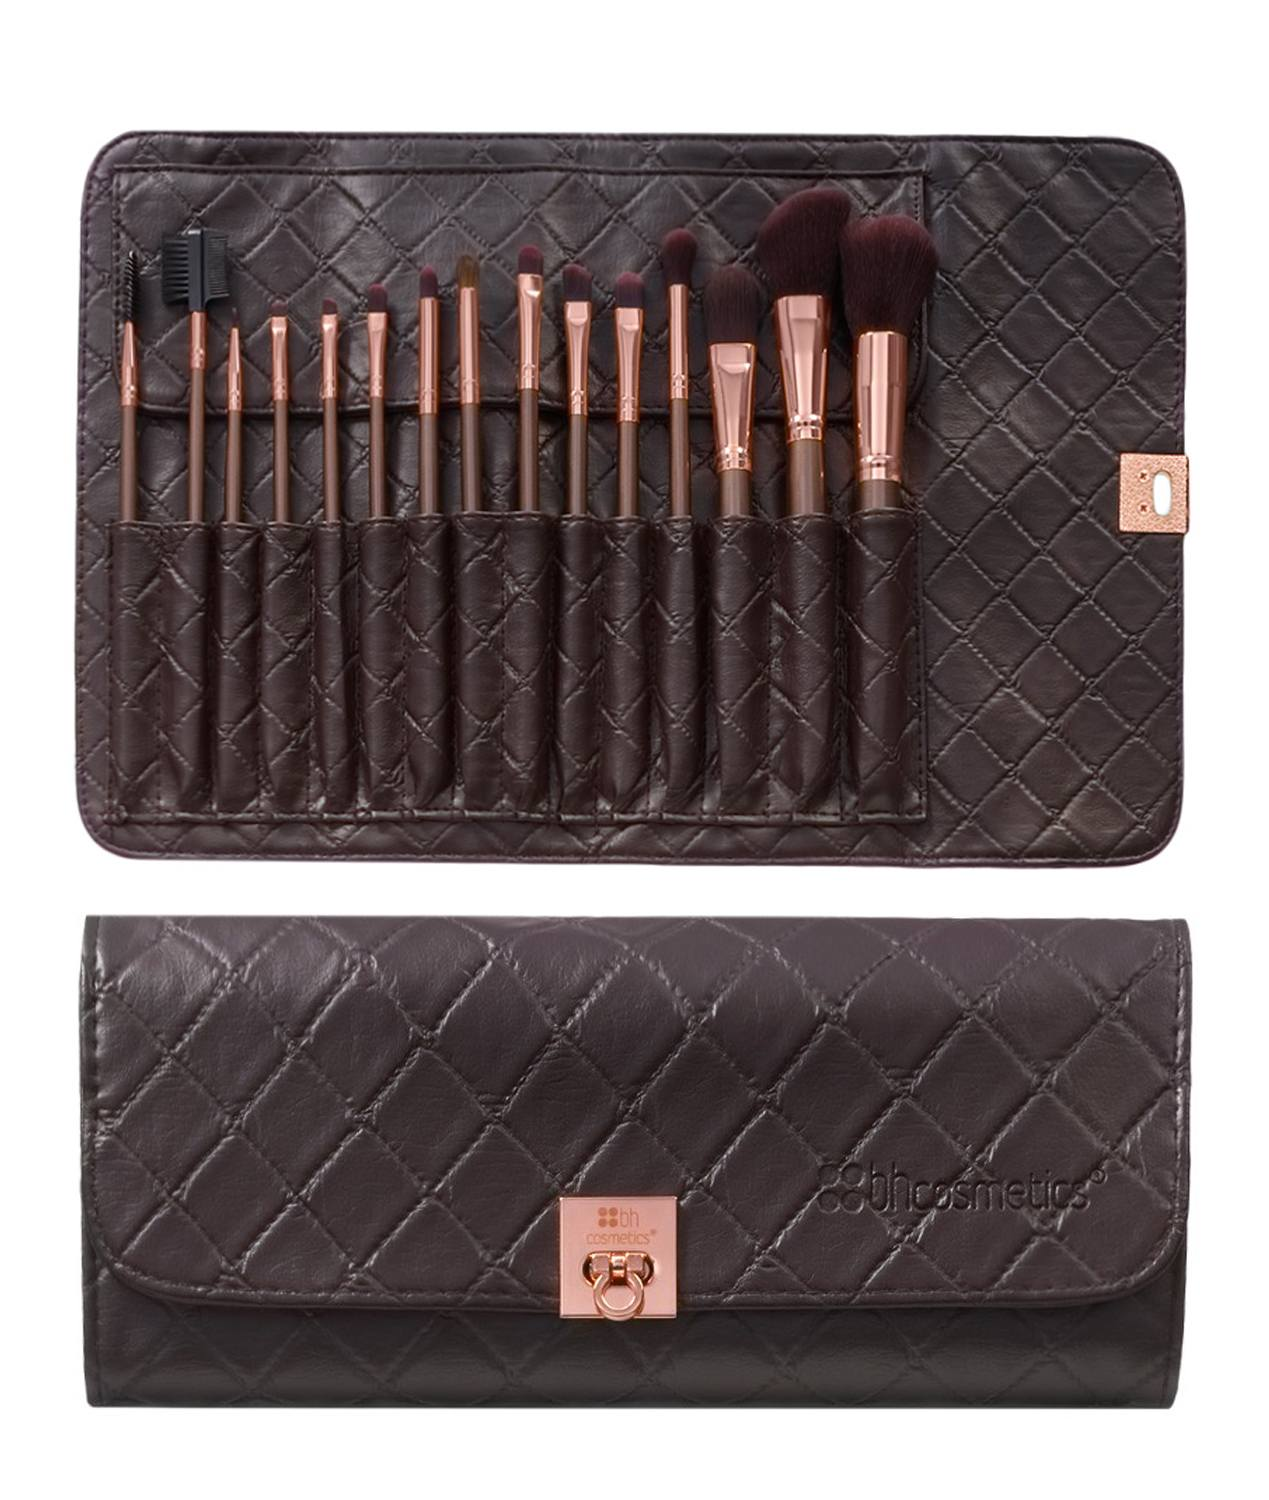 BH Cosmetics 15 pc Rose Gold Vegan Brush Set